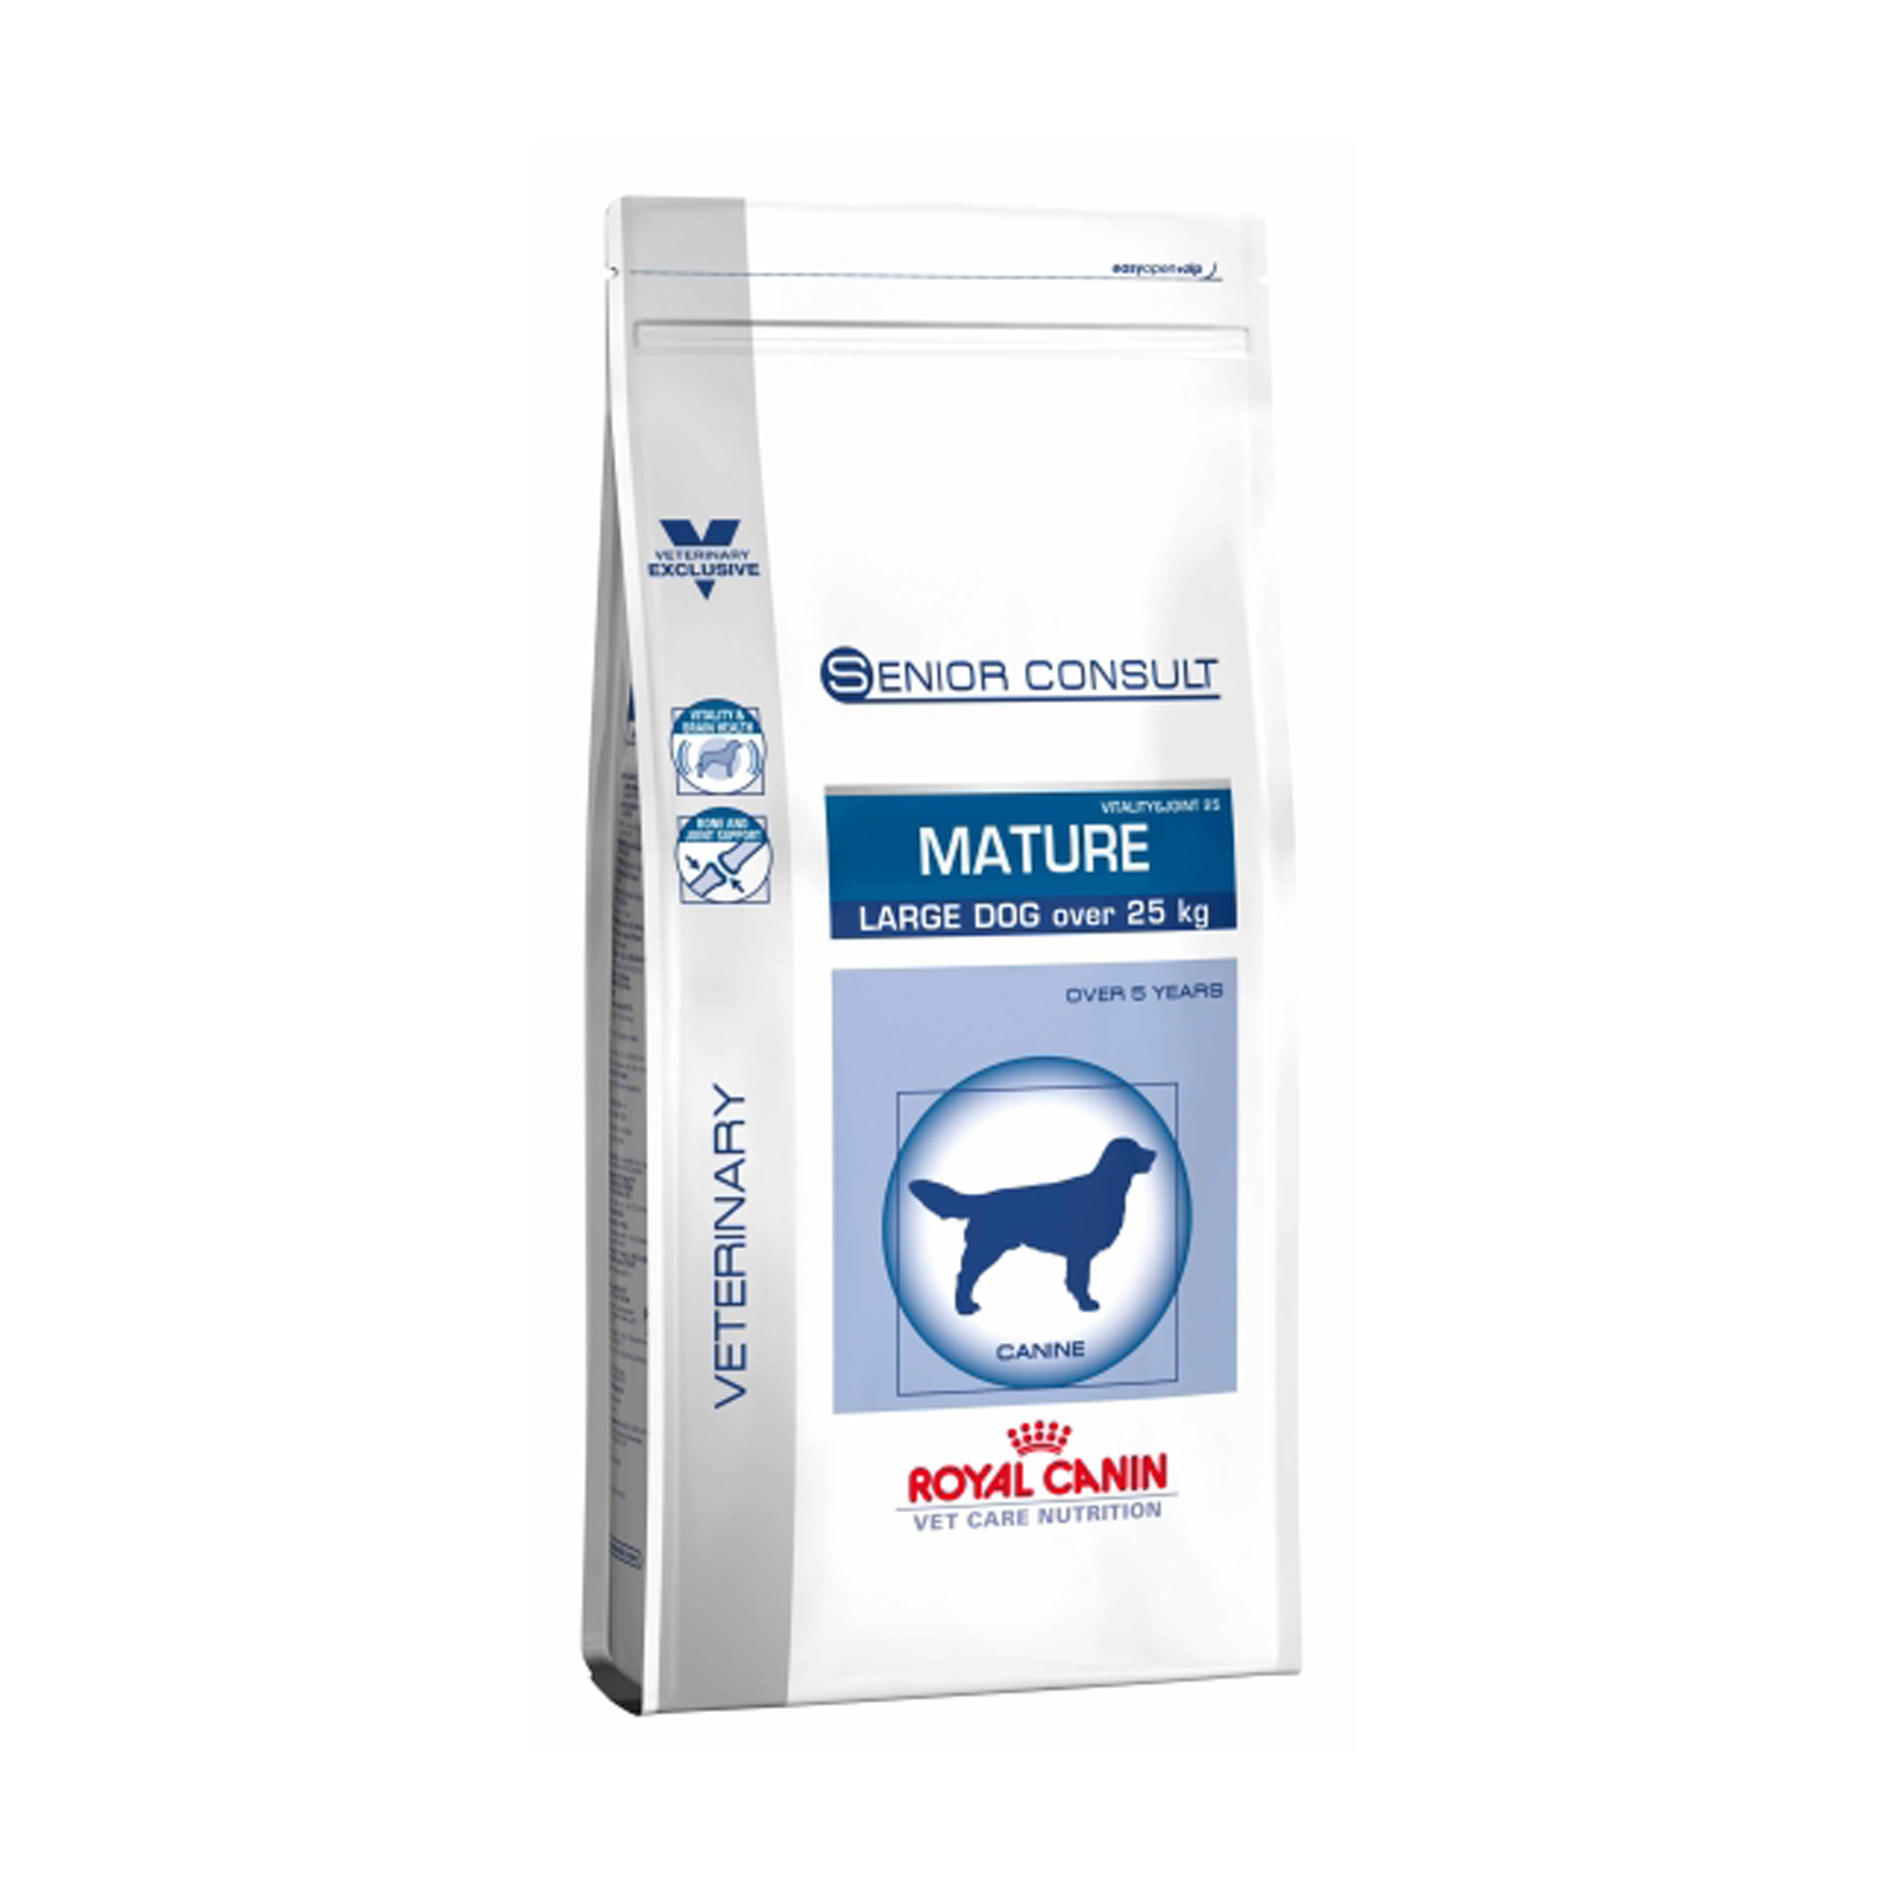 Royal Canin Canine Veterinary Care Senior Consult Mature Large Dog